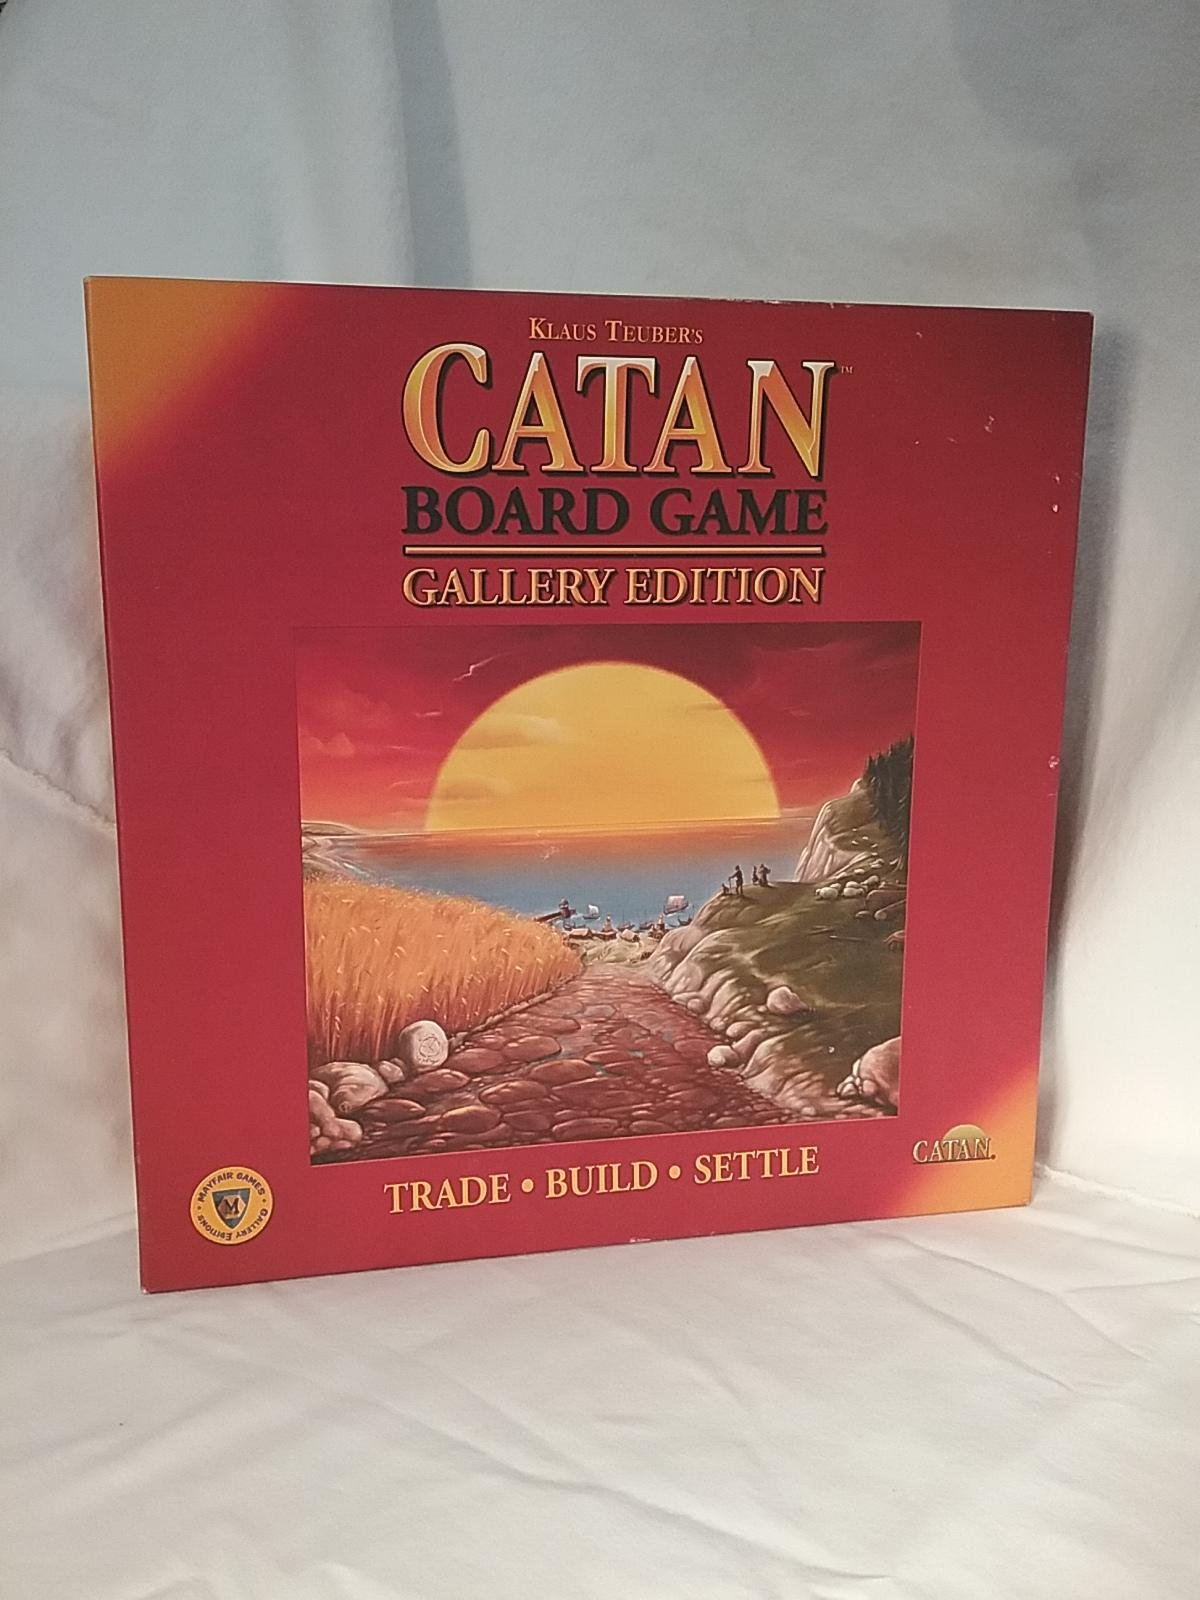 Settlers of Catan Gallery Edition: Amazon.es: Mayfair Games: Libros en idiomas extranjeros